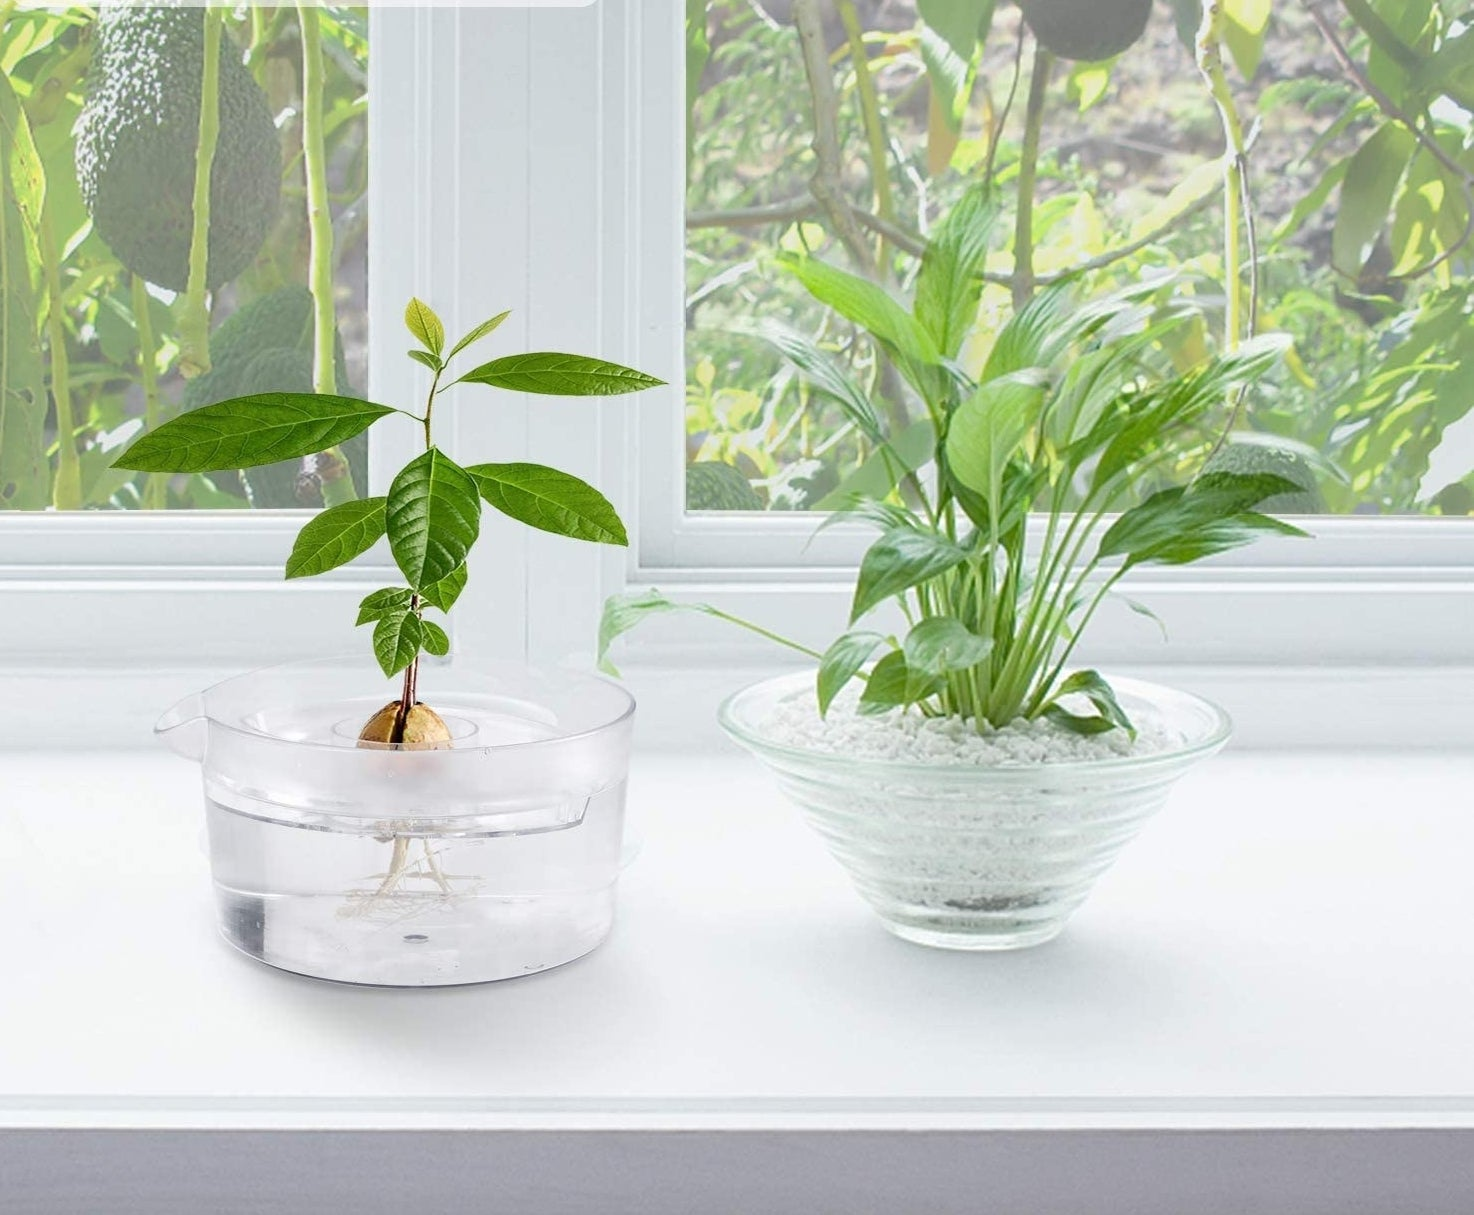 avocado tree growing kit sitting on a window sill next to a plant